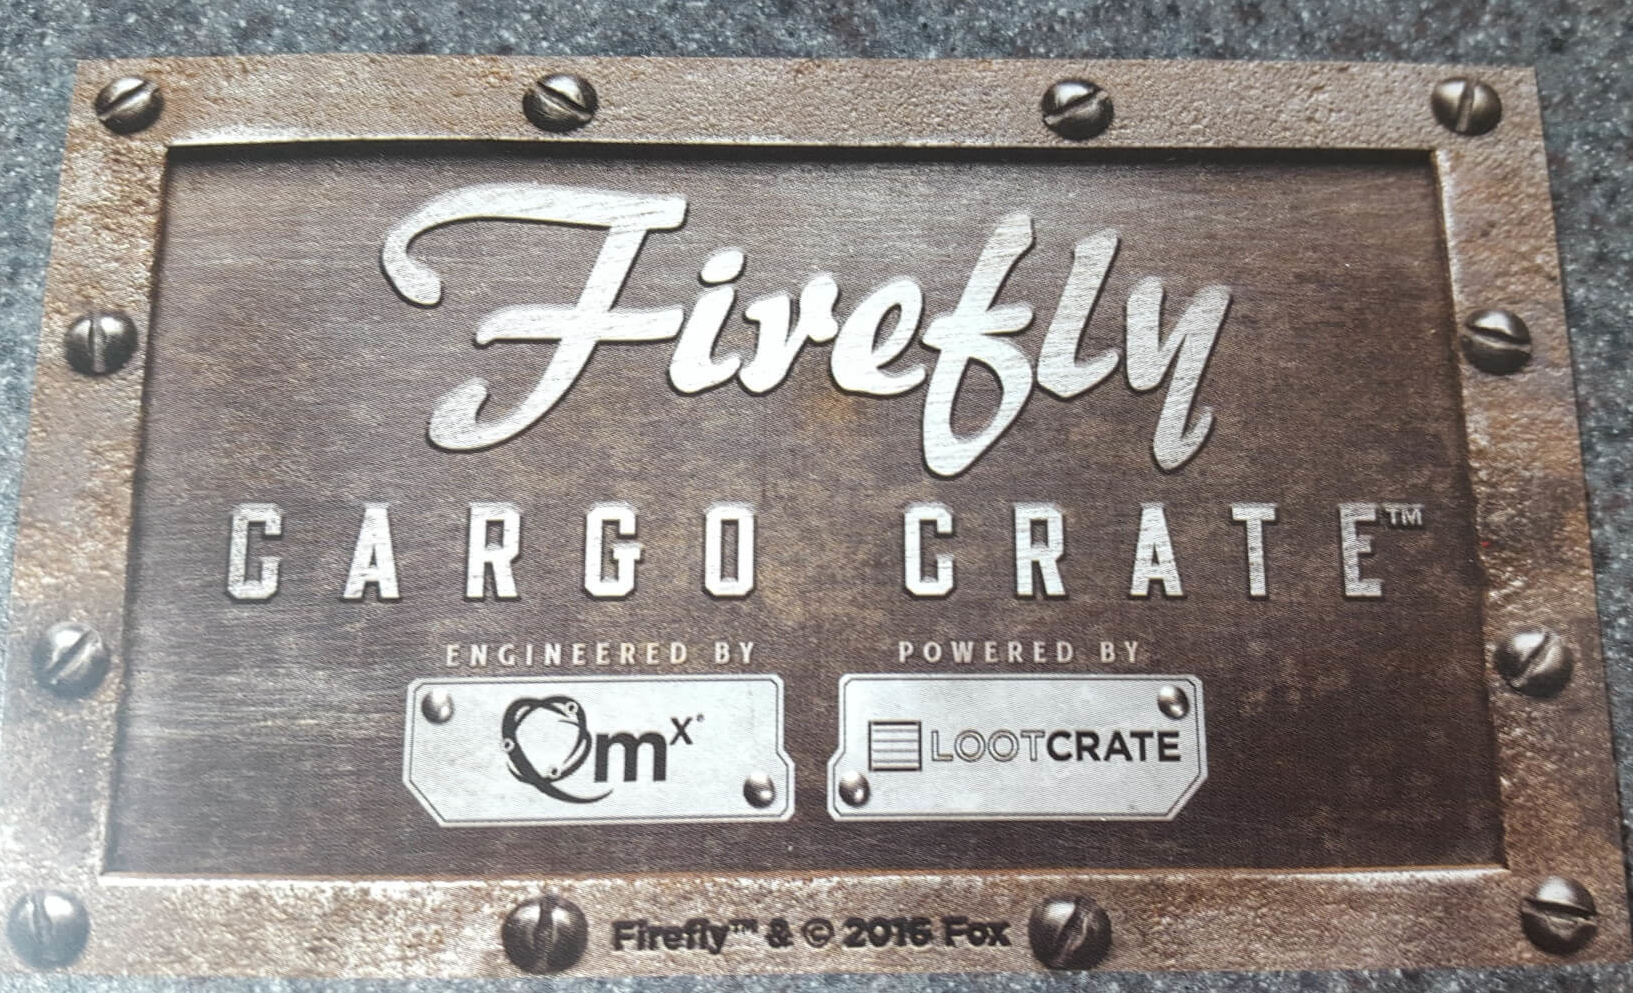 Firefly Cargo Crate Founders Pin + Subscriptions Close Soon!